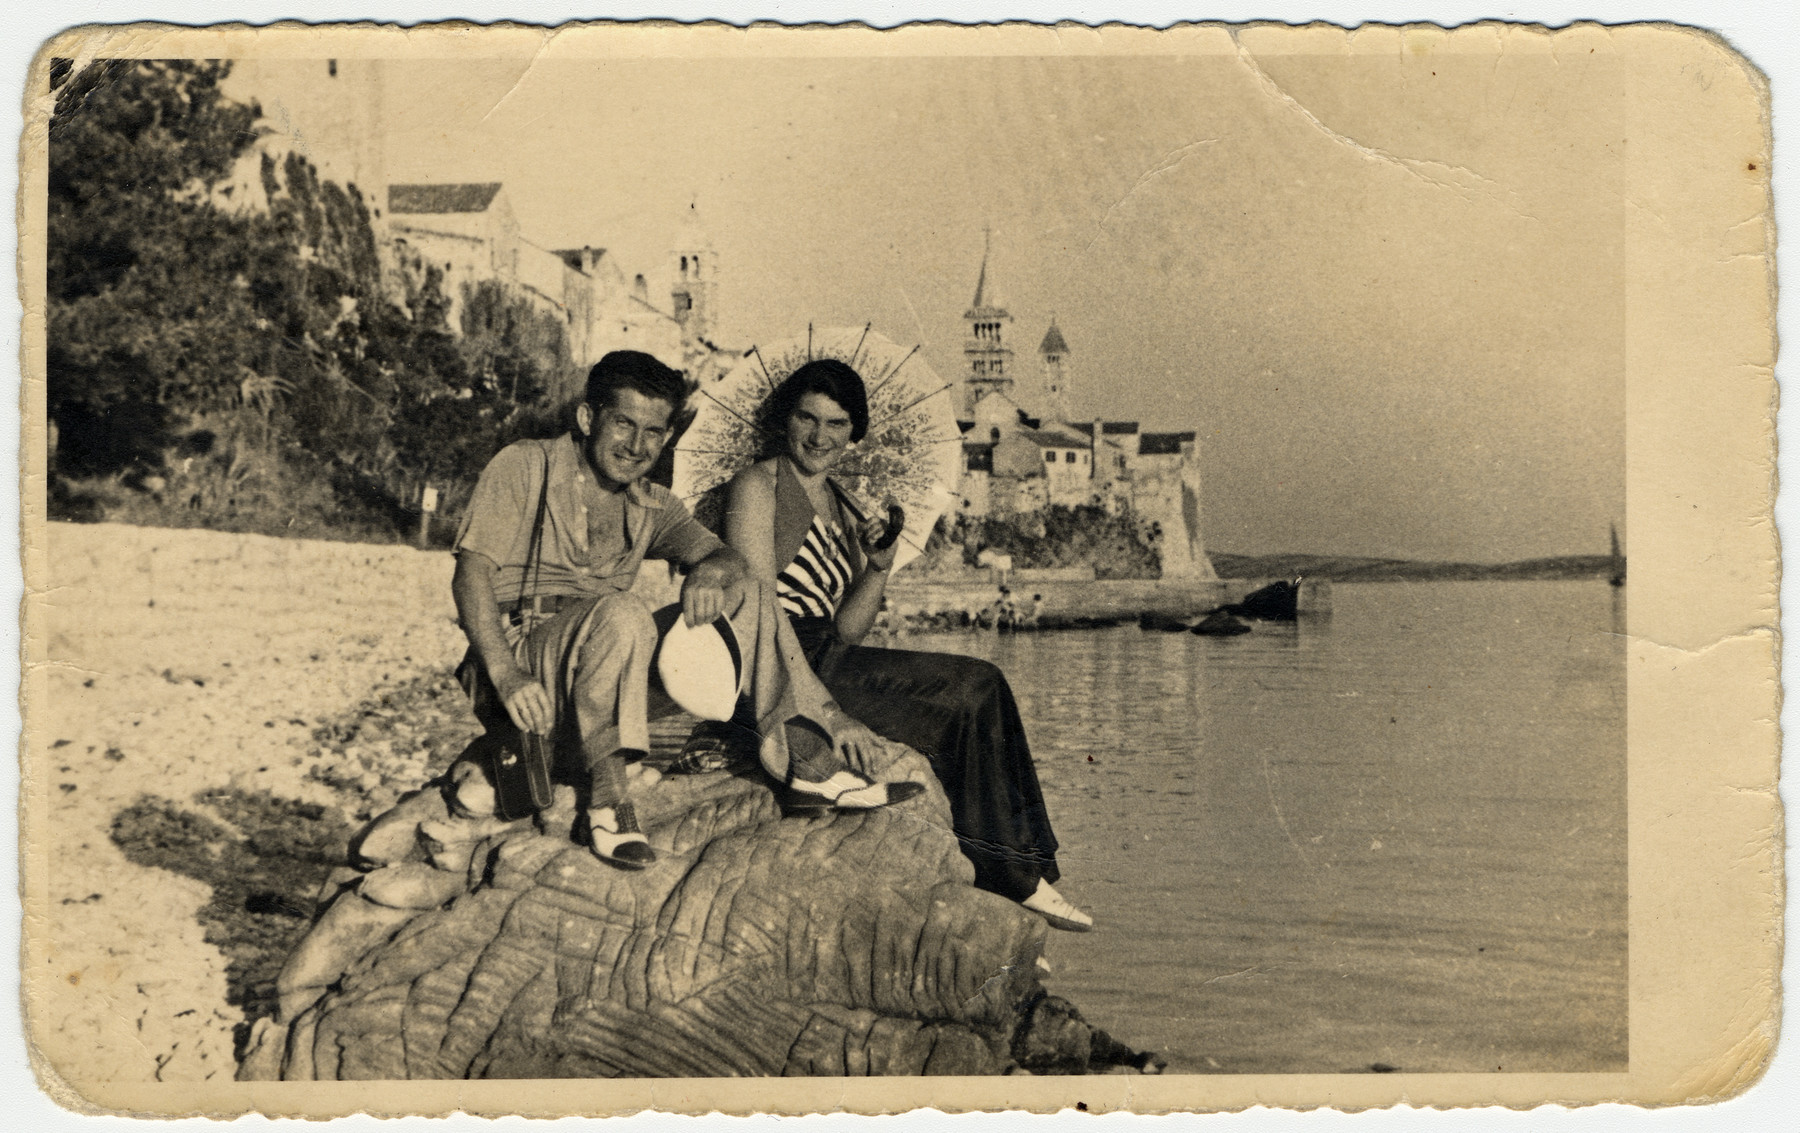 Andor and Marta Willer rest on a large rock on the Adriadic coast during their honeymoon.